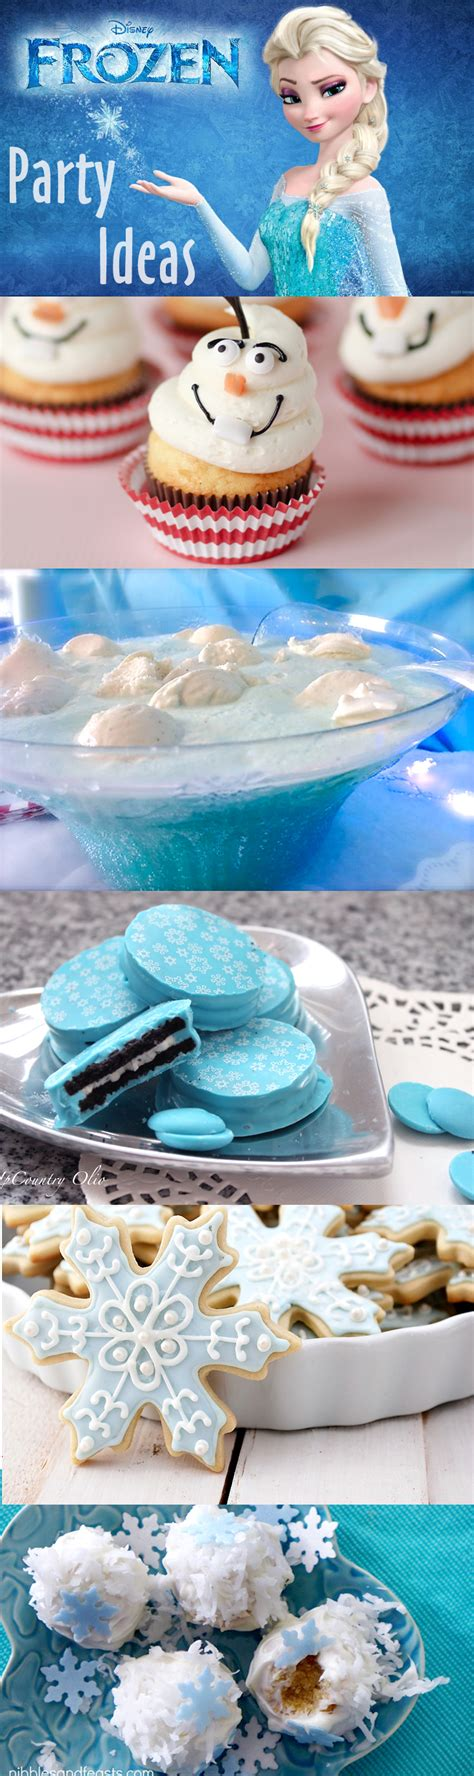 Throw a Disney Frozen Themed Party Brownie Bites Blog